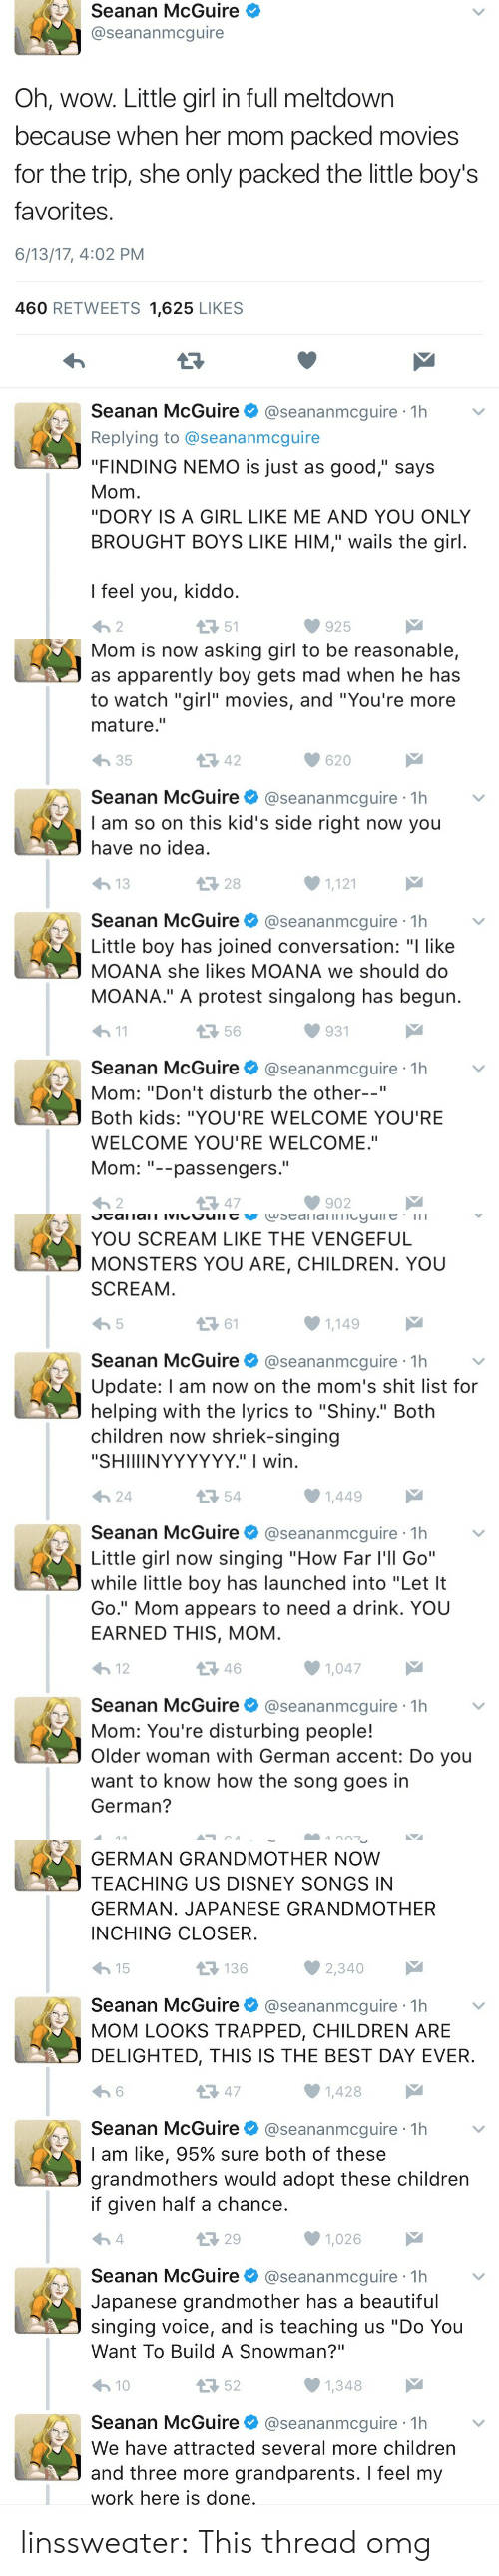 """Apparently, Beautiful, and Children: Seanan McGuire  @seananmcguire  Oh, wow. Little girl in full meltdown  because when her mom packed movies  for the trip, she only packed the little boy's  favorites  6/13/17, 4:02 PM  460 RETWEETS 1,625 LIKES  Seanan McGuire@seananmcguire 1h  Replying to @seananmcguire  """"FINDING NEMO is just as good,"""" says  Mom  """"DORY IS A GIRL LIKE ME AND YOU ONLY  BROUGHT BOYS LIKE HIM,"""" wails the girl  I feel you, kiddo  わ2  51  925   Mom is now asking girl to be reasonable,  as apparently boy gets mad when he has  to watch """"girl"""" movies, and """"You're more  mature.""""  わ35  42  620  Seanan McGuire@seananmcguire 1h  I am so on this kid's side right now you  have no idea  28  1,121  Seanan McGuire@seananmcguire 1h  Little boy has joined conversation: """"I like  MOANA she likes MOANA we should do  MOANA."""" A protest singalong has begun  h1  56  931  Seanan McGuire@seananmcguire 1h  Mom: """"Don't disturb the other--""""  Both kids: """"YOU'RE WELCOME YOU'RE  WELCOME YOU'RE WELCOME.""""  Mom--passengers.  わ2  다 47  902   YOU SCREAM LIKE THE VENGEFUL  MONSTERS YOU ARE, CHILDREN. YOU  SCREAM  ロ61  1,149  Seanan McGuire@seananmcguire 1h  Update: l am now on the mom's shit list for  helping with the lyrics to """"Shiny."""" Both  children now shriek-singing  """"SHIIIINYYYYYY."""" I wirn  24  54  Seanan McGuireネ@seananmcgure·1h  Little girl now singing """"How Far l'll Go""""  while little boy has launched into """"Let It  Go."""" Mom appears to need a drink. YOU  EARNED THIS, MOM  12  46  1,047  Seanan McGuire@seananmcguire 1h  Mom: You're disturbing people!  Older woman with German accent: Do you  want to know how the song goes in  German?   GERMAN GRANDMOTHER NOW  TEACHING US DISNEY SONGS IN  GERMAN. JAPANESE GRANDMOTHER  INCHING CLOSER  15  136  Seanan McGuire@seananmcguire 1h  MOM LOOKS TRAPPED, CHILDREN ARE  DELIGHTED, THIS IS THE BEST DAY EVER  13 47  1,428  Seanan McGuire@seananmcguire 1h  I am like, 95% sure both of these  grandmothers would adopt these children  if given half a chan"""